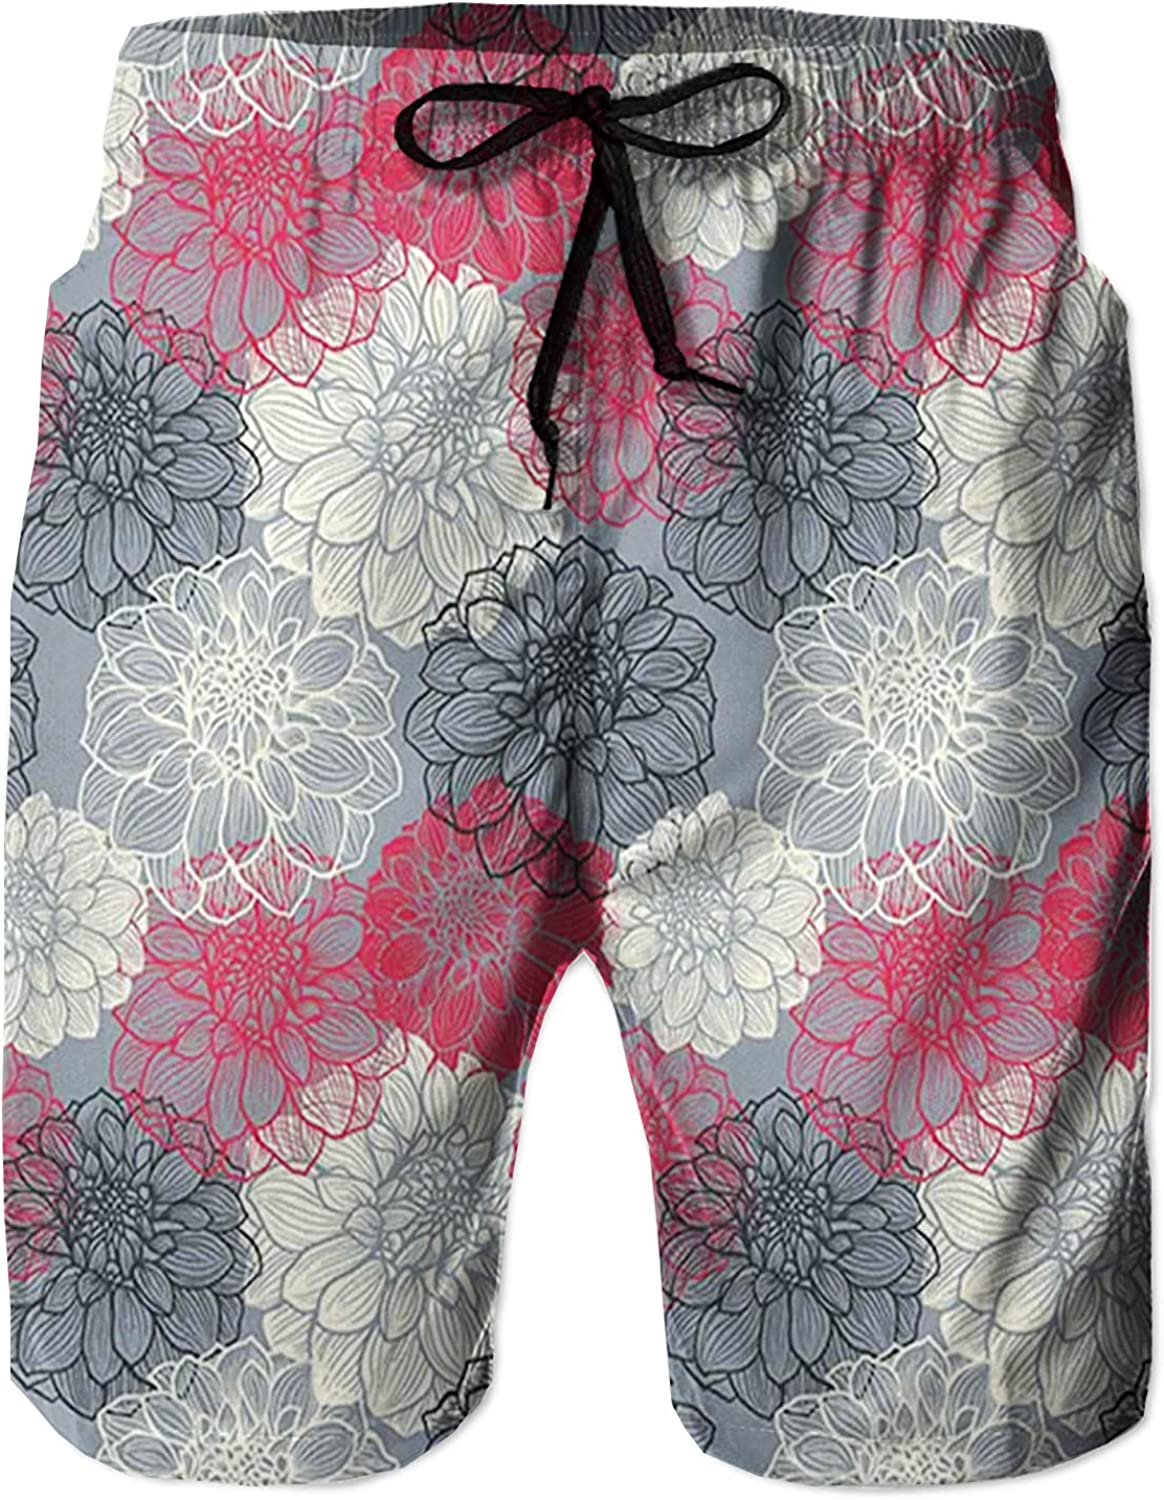 Men's Long Swim Trunks with Mesh Lining Beach Bathing Suits Board Shorts Swimwear with Pockets and No Mesh,Hand Drawn Repeating Big and Small Flowers with Color Element Effects L